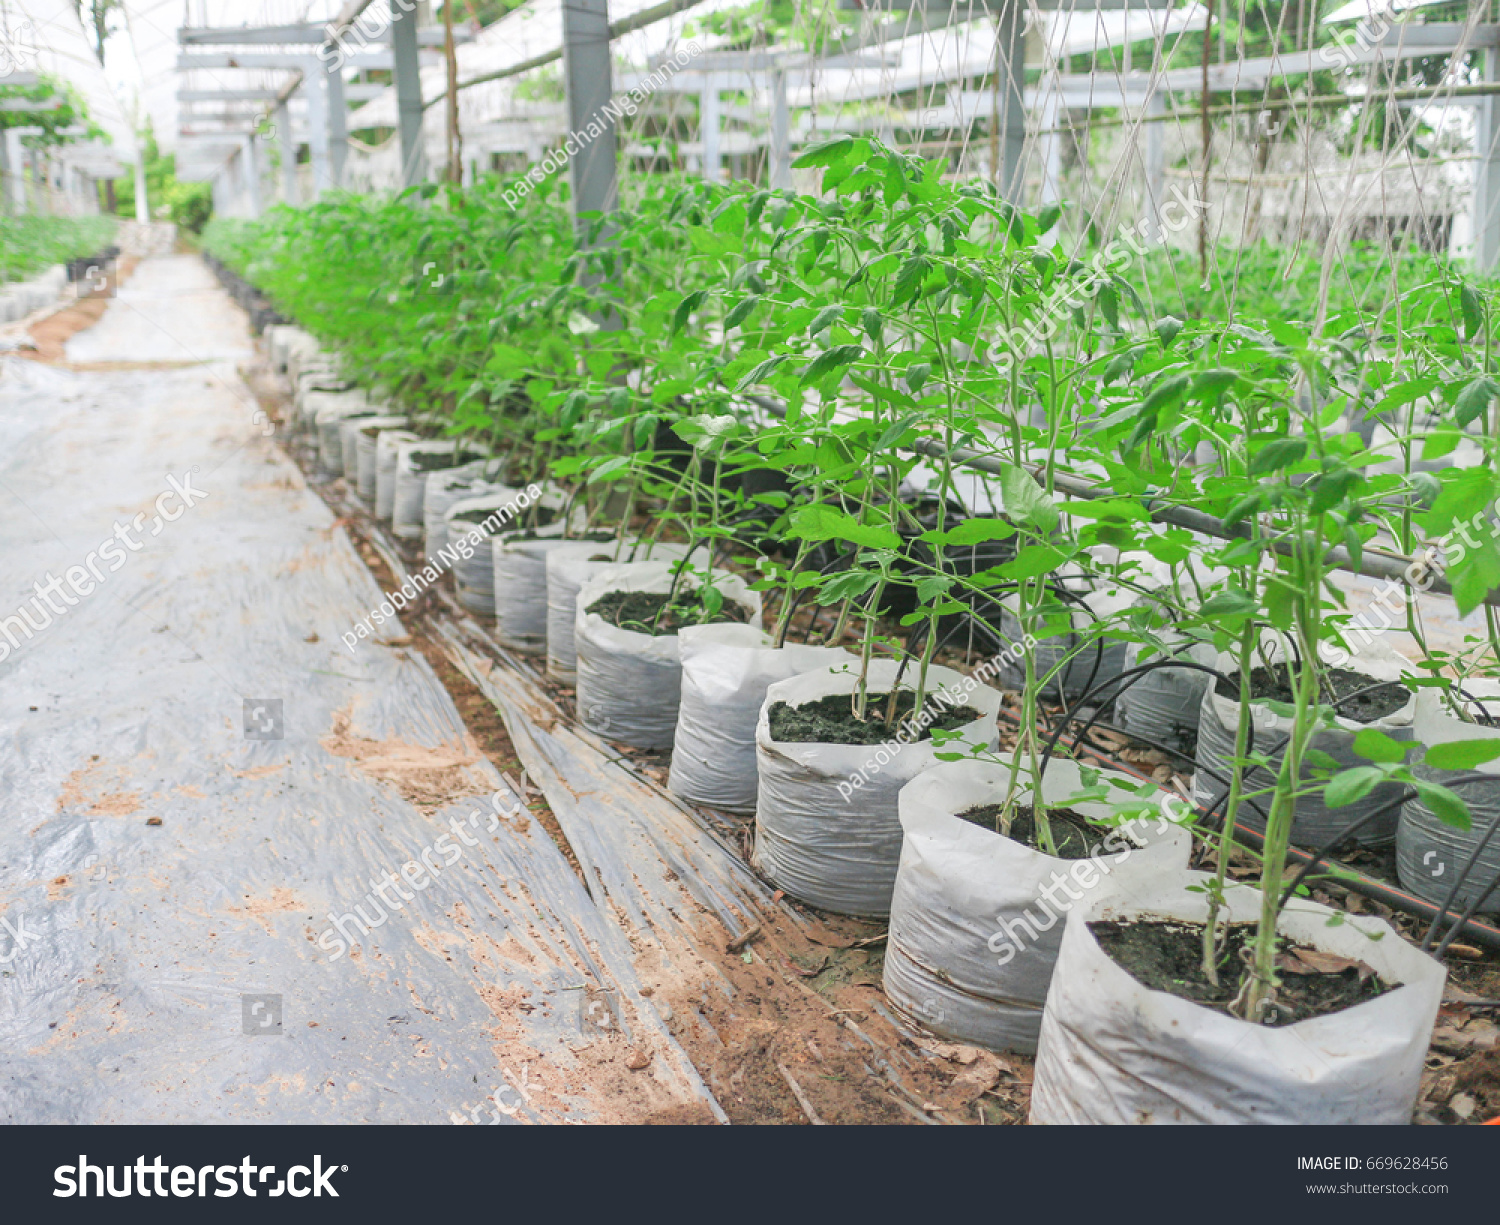 Planting Vegetable Garden Green Vegetable Rows Beautiful. Biochemical  Experiments Specialized Education The Development Of The